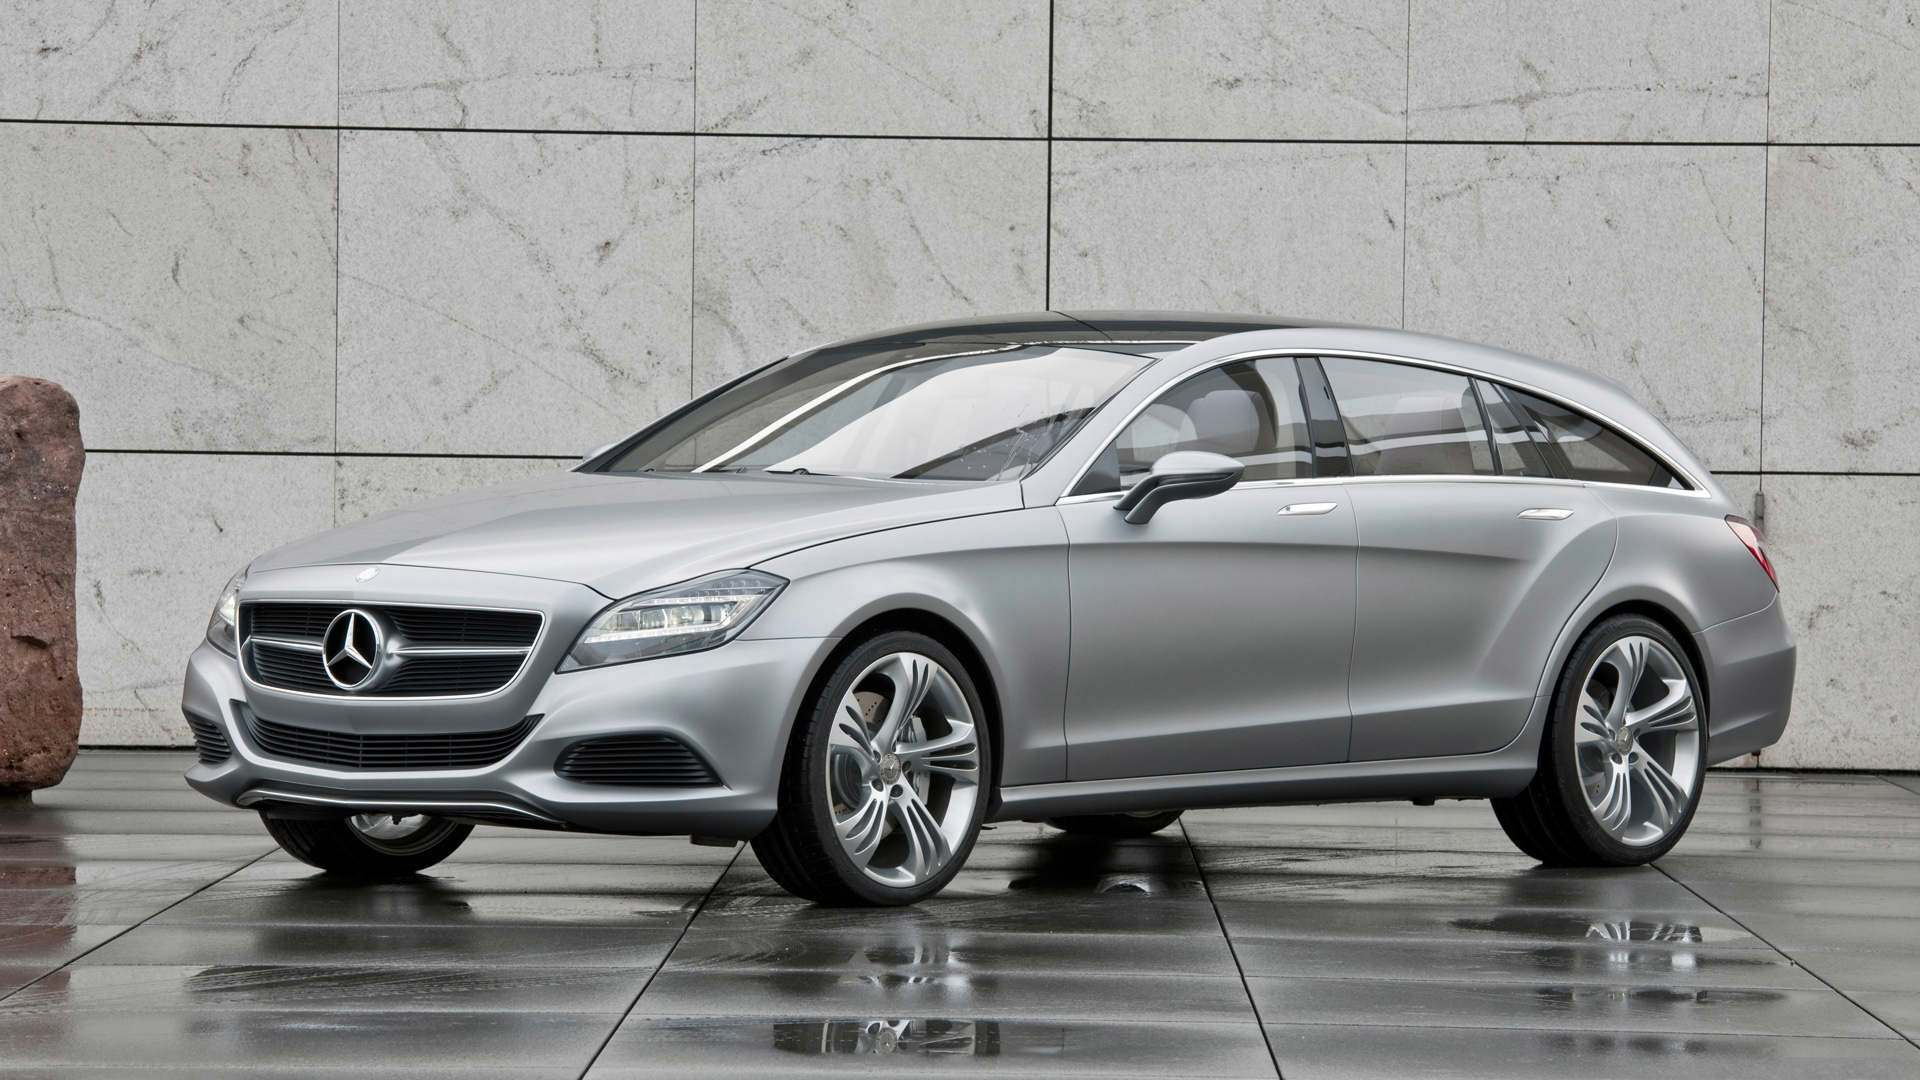 Mercedes benz cars hd wallpapers for Autos mercedes benz